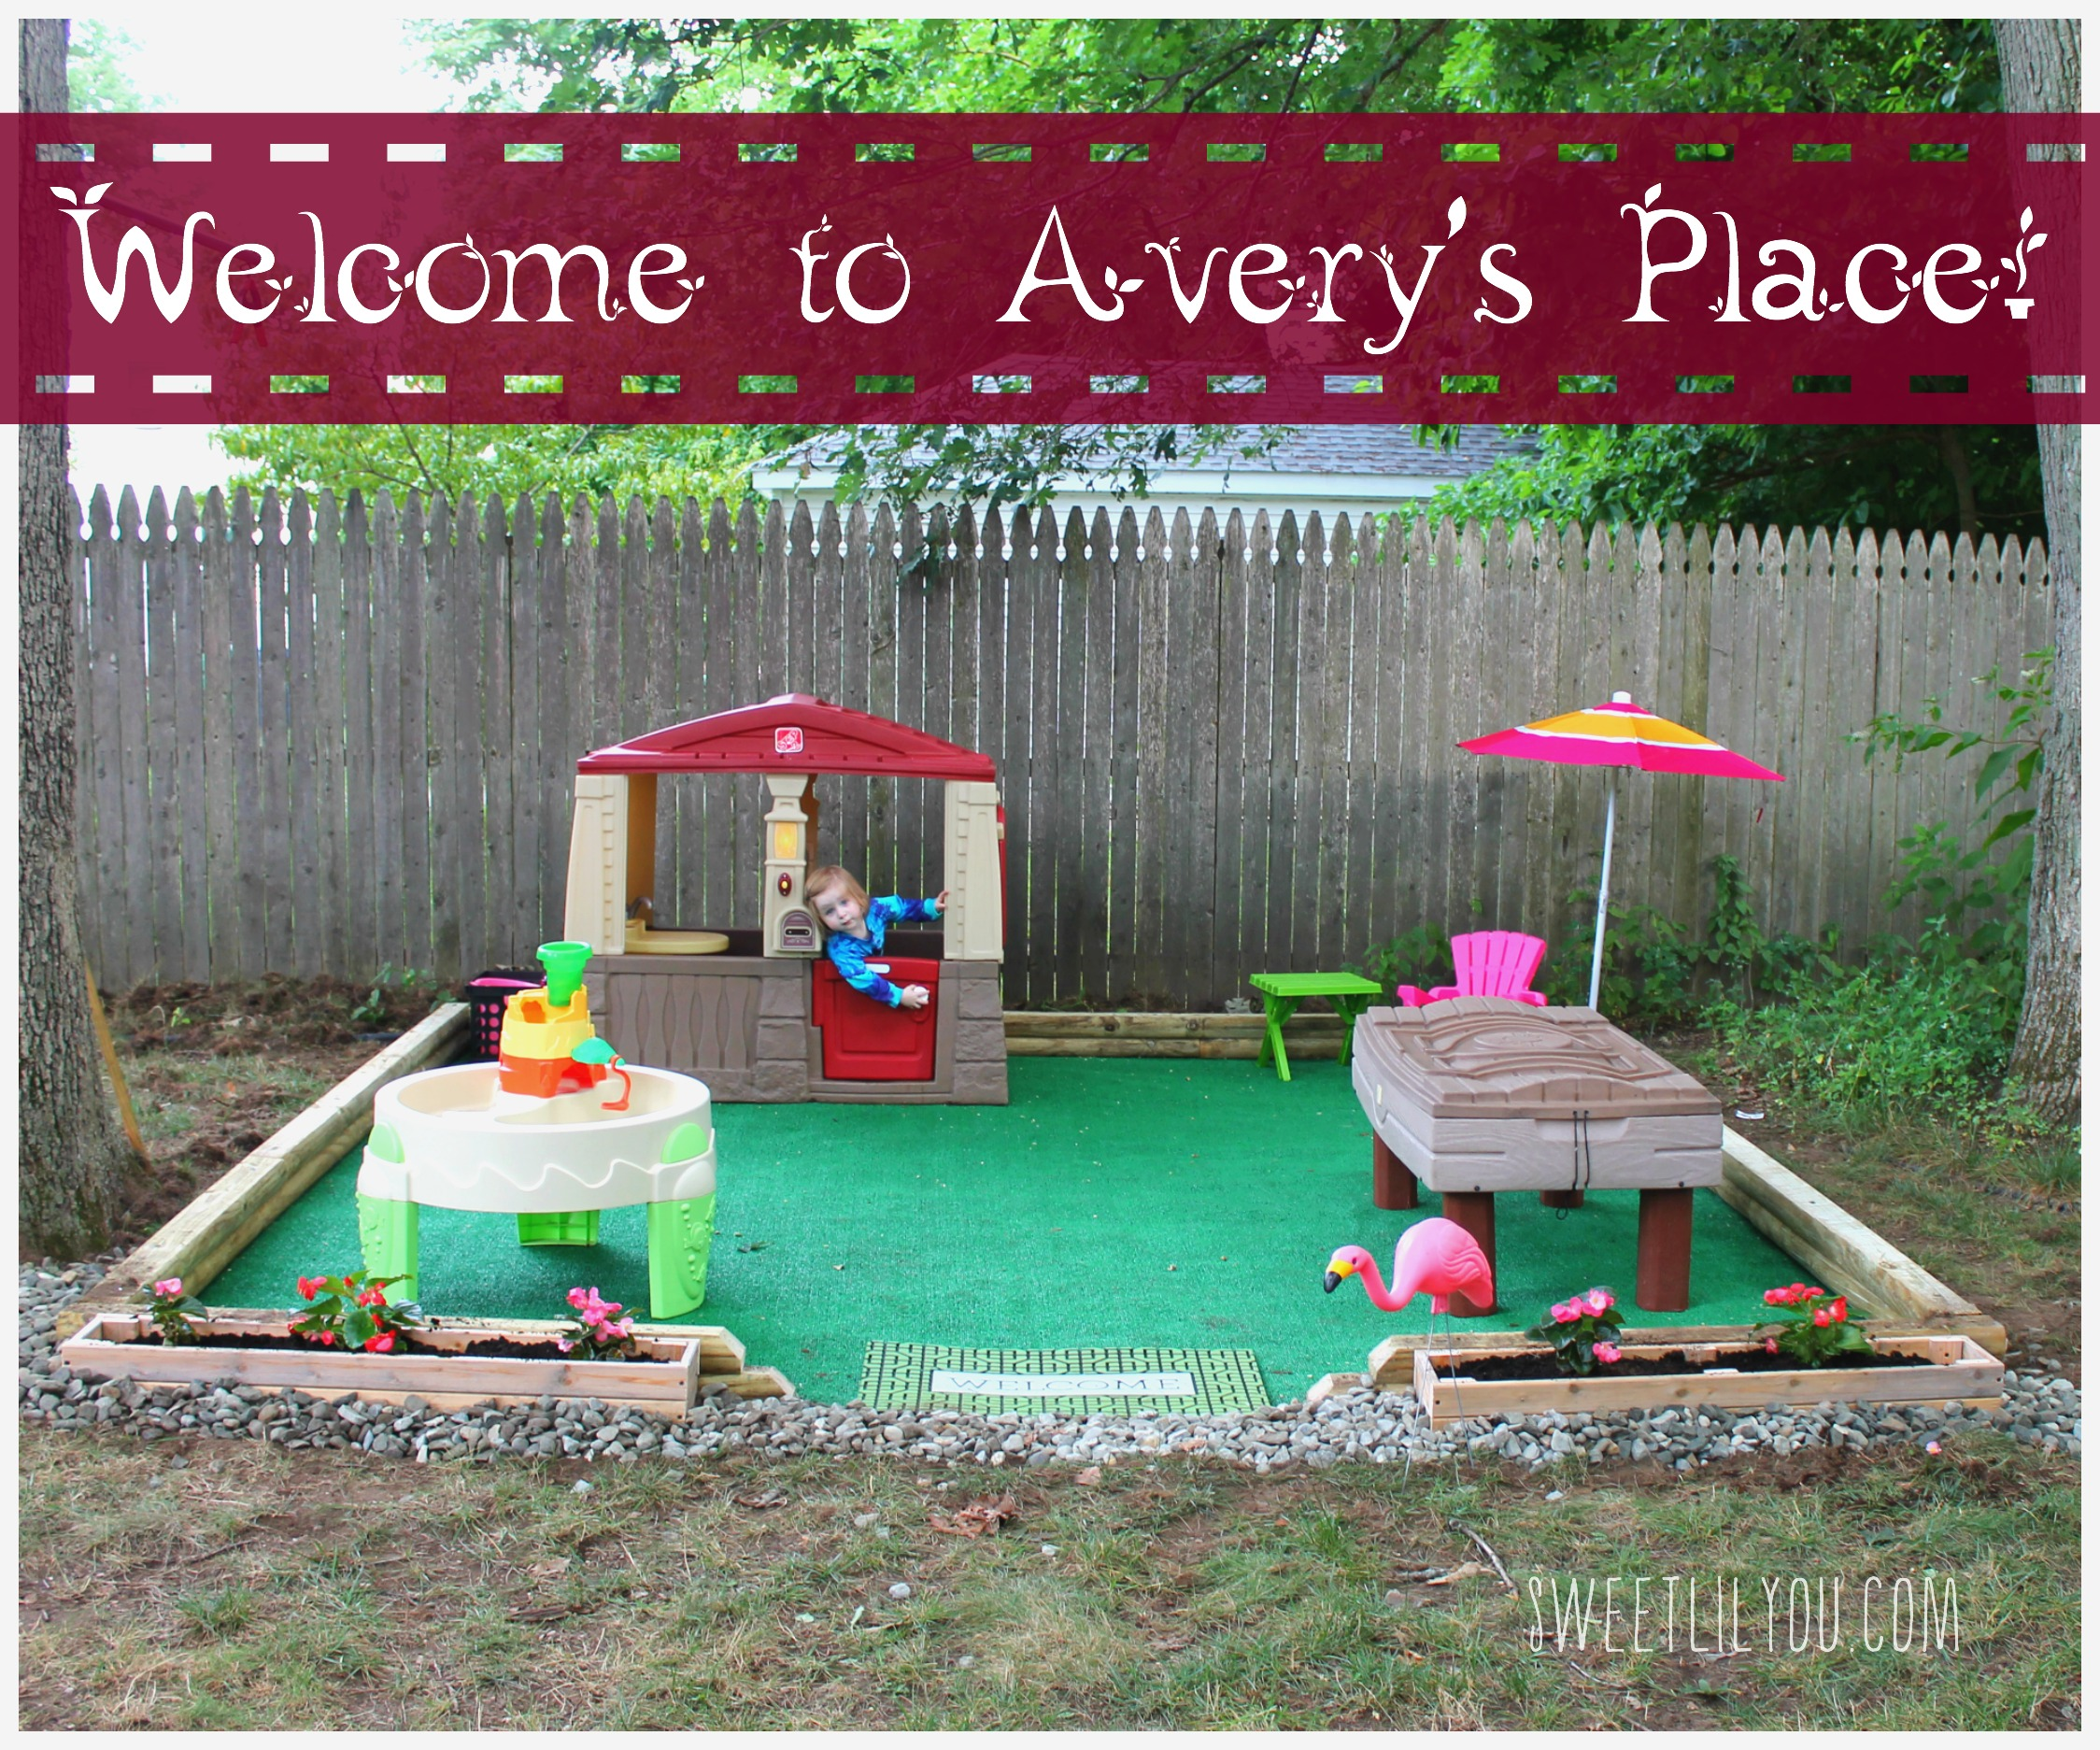 Outside Play Ground Toys : Diy outdoor play space avery s place sweet lil you